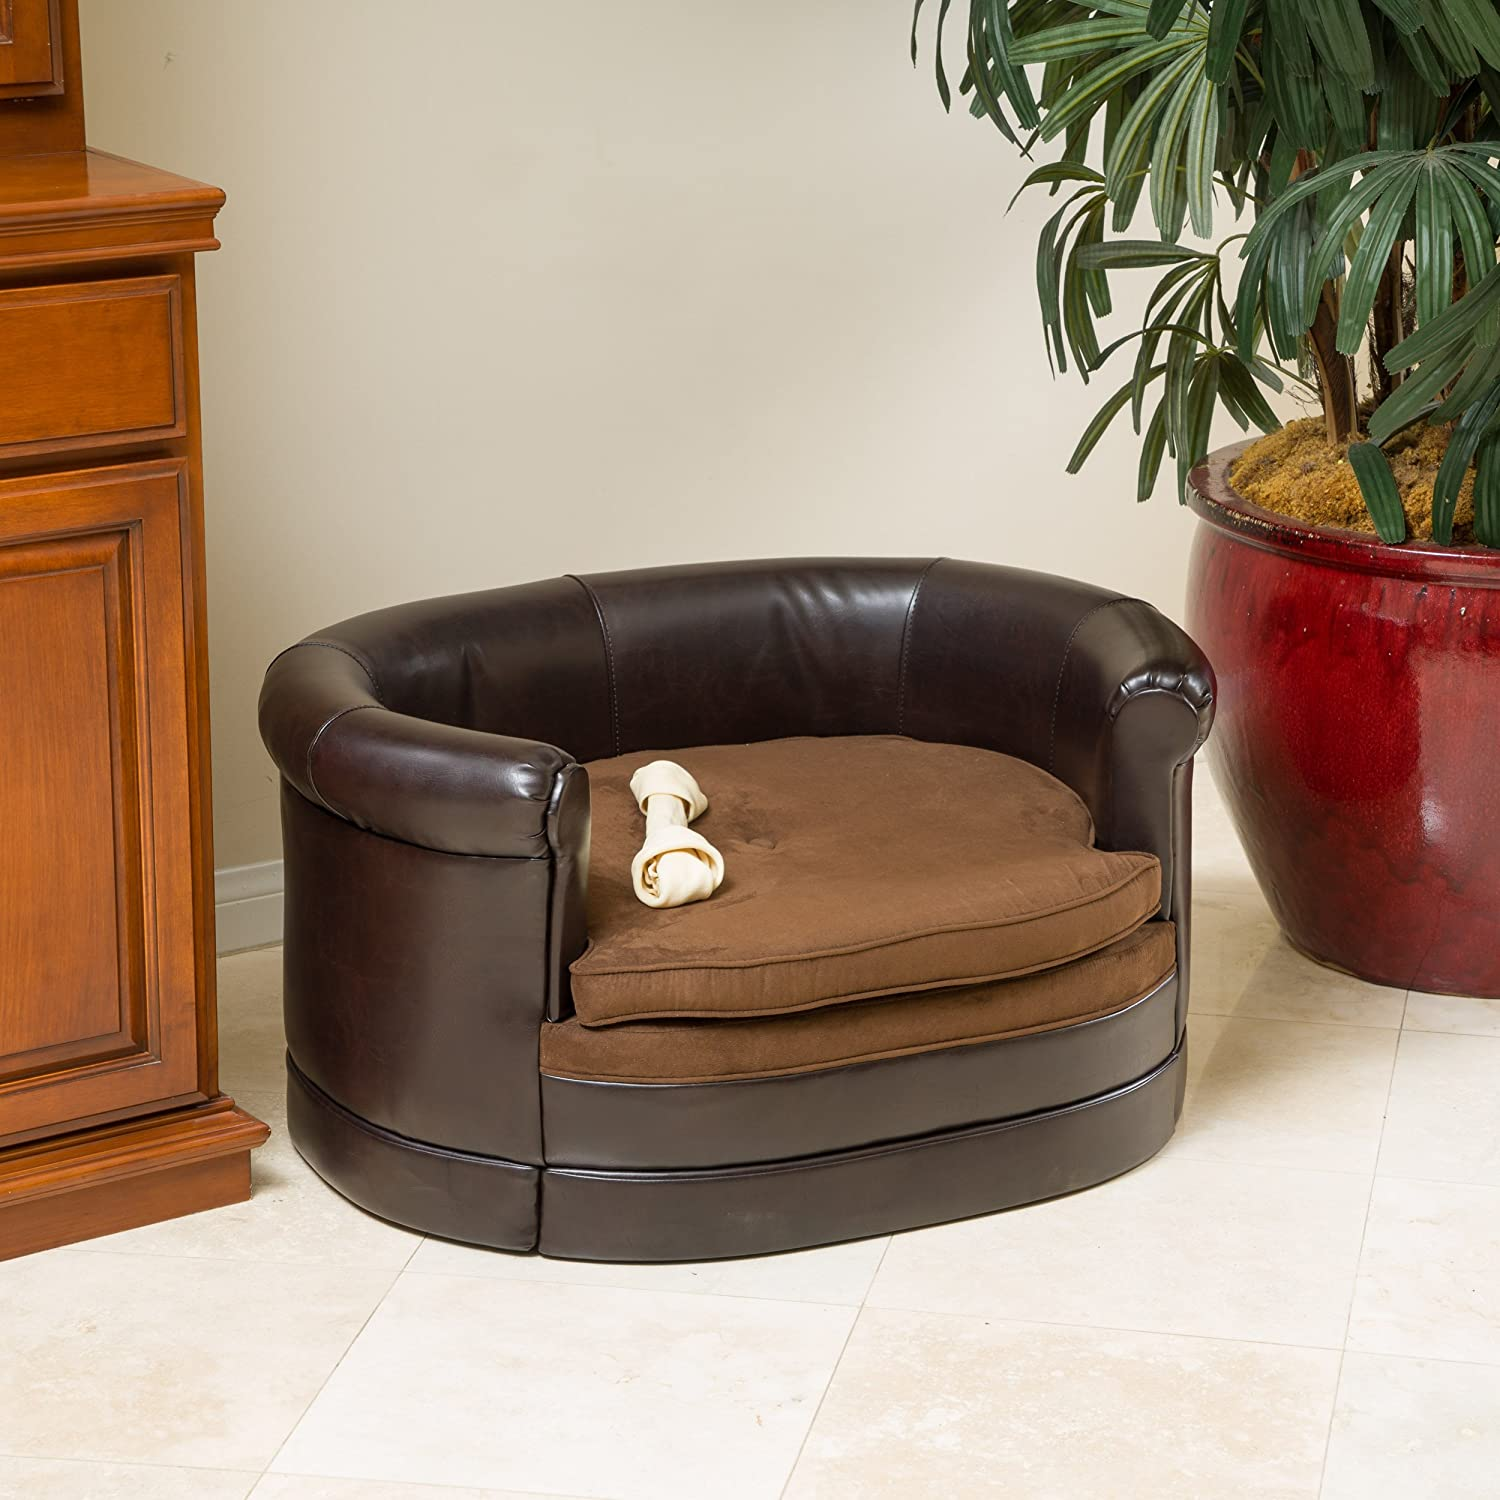 Amazon Rover Oval Chocolate Brown Leather Dog Sofa Bed Pet